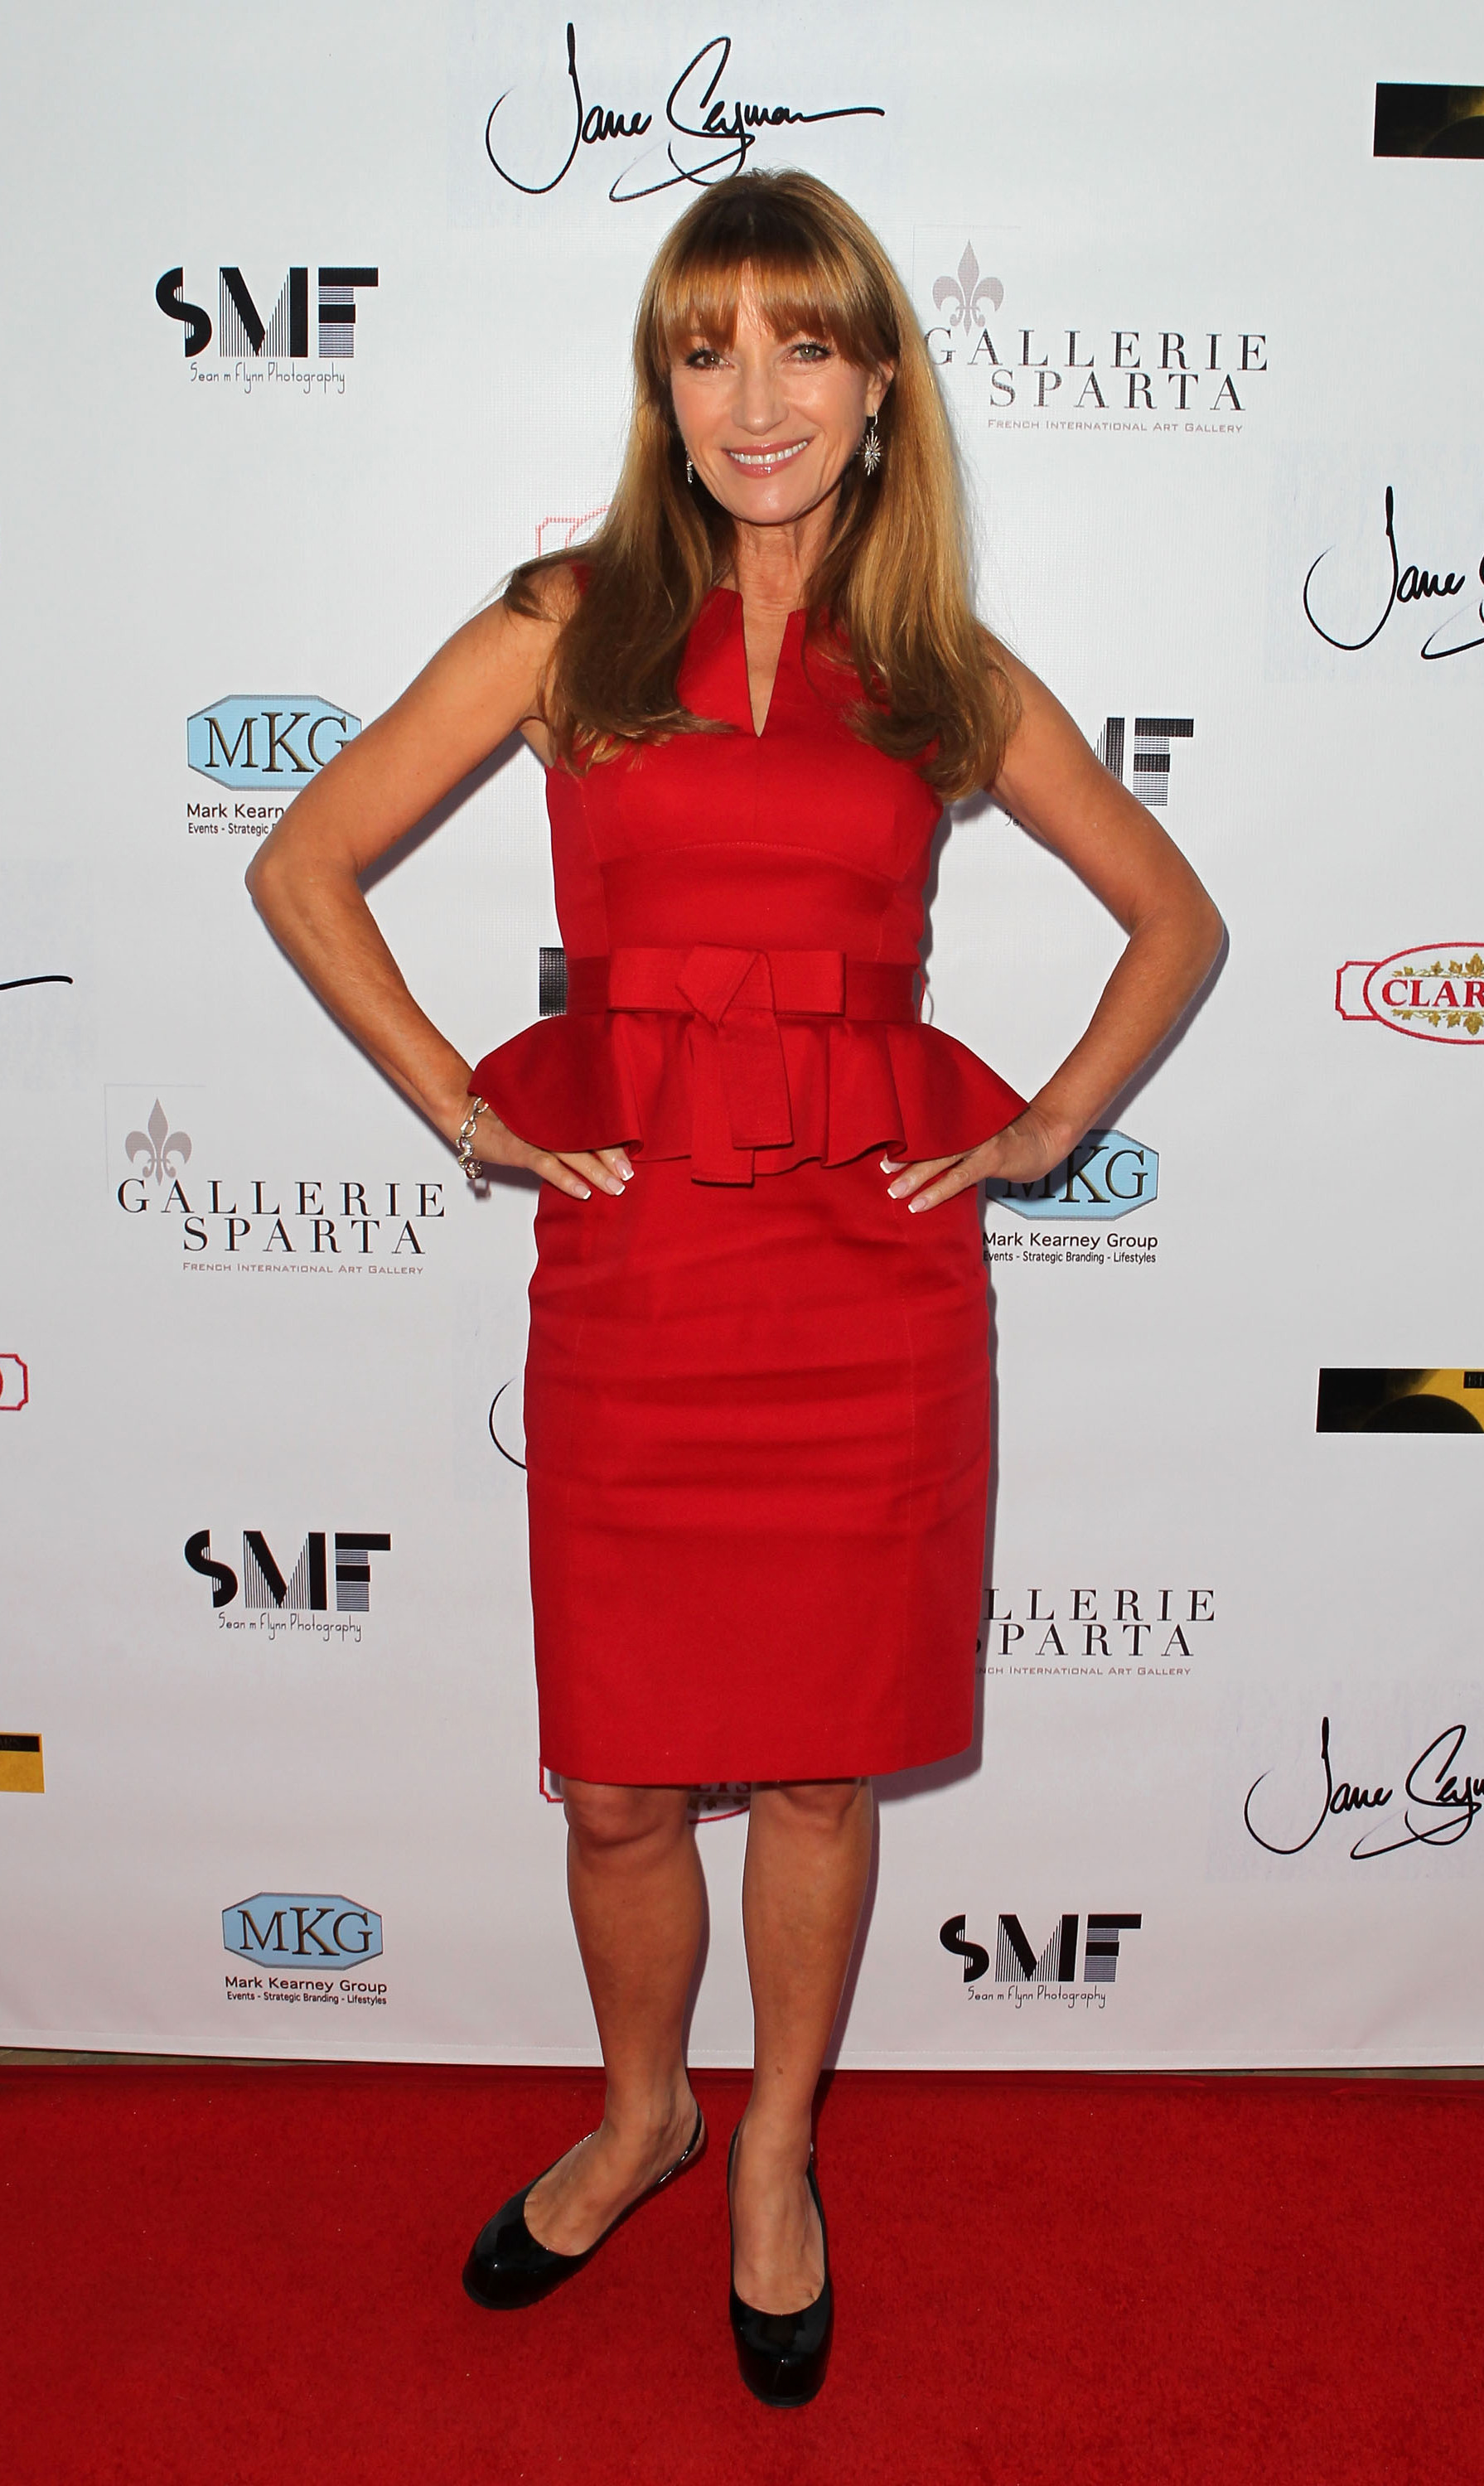 The former bond girl looked ravishing a figure-hugging, red peplum dress.